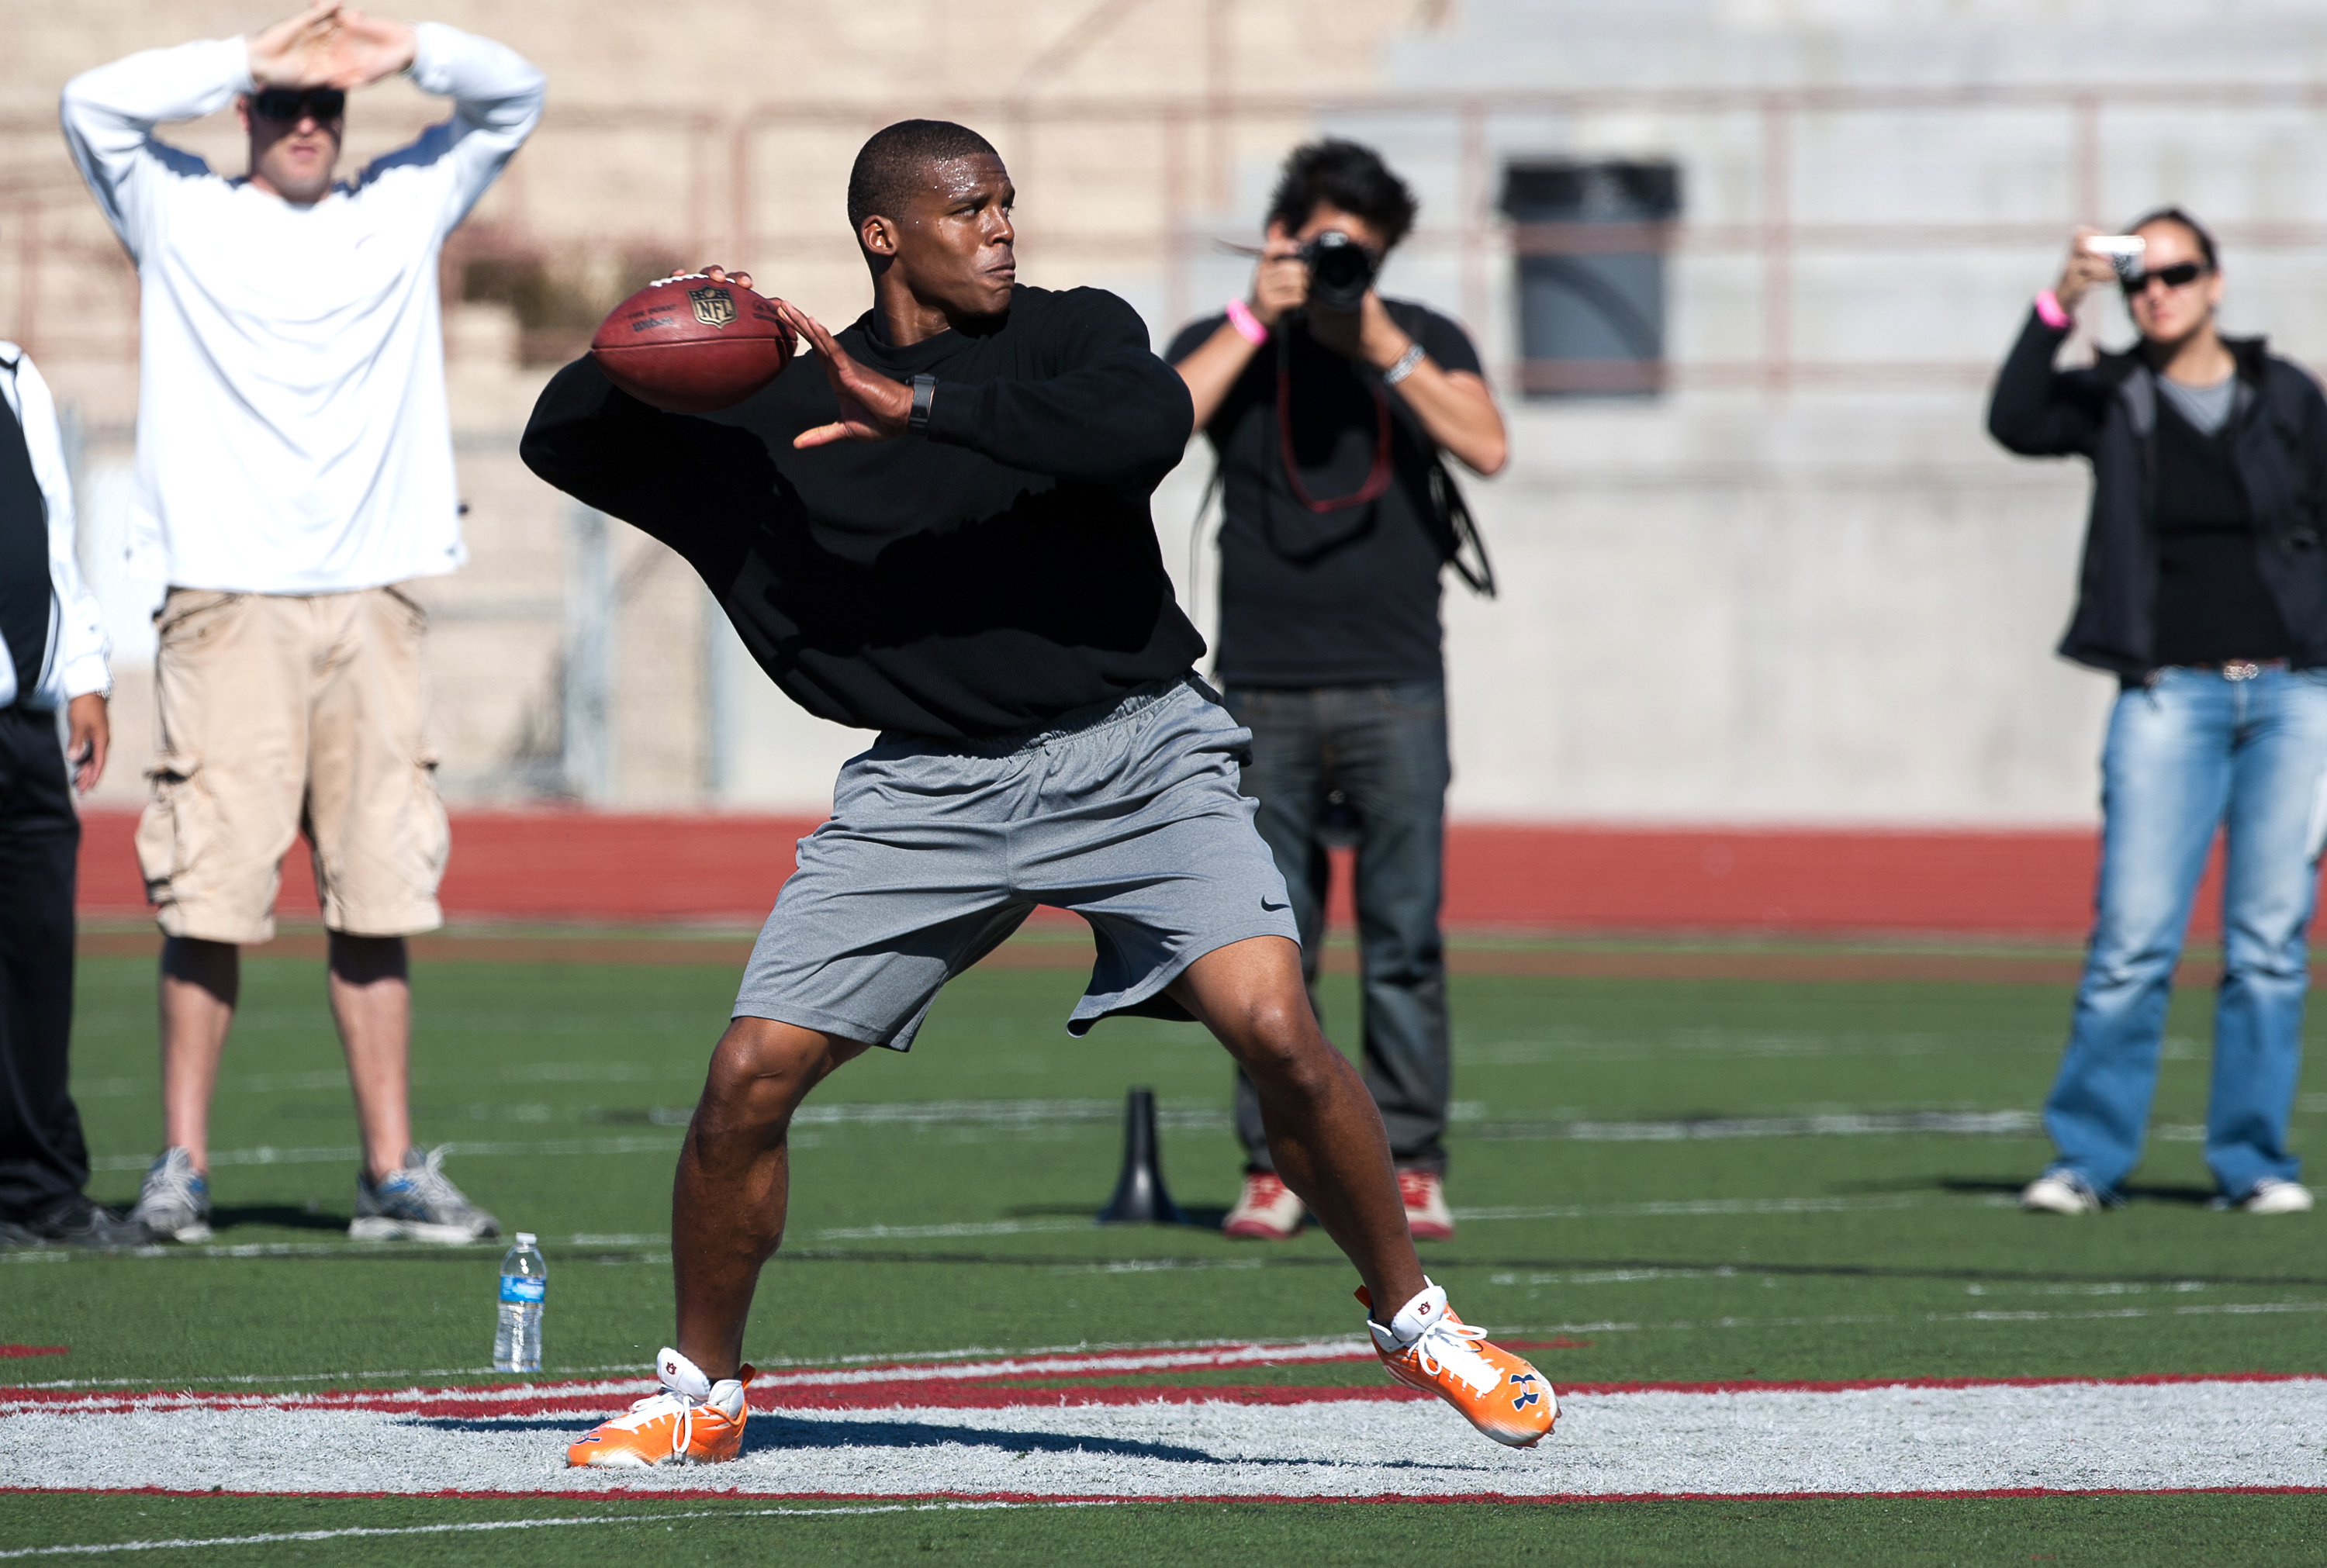 SAN DIEGO, CA - FEBRUARY 10: 2010 Heisman Trophy winning quarterback Cam Newton of Auburn throws the ball during his workout routine for the media at Cathedral High School's sports stadium on February 10, 2011 in San Diego, California. (Photo by Kent Horn